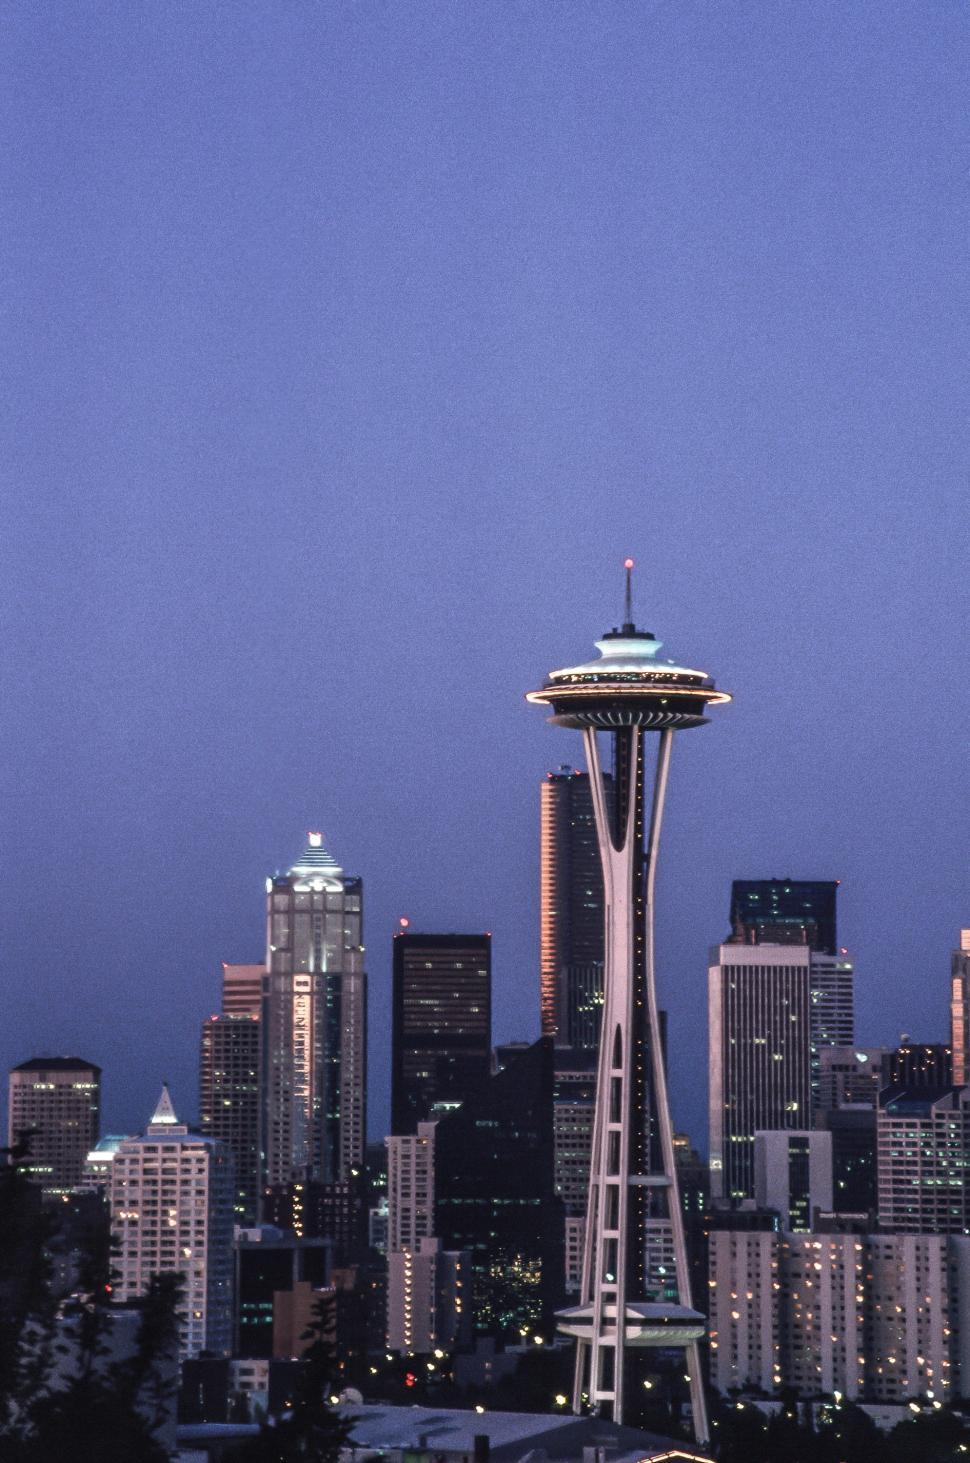 Download Free Stock HD Photo of Seattle Space Needle evening view Online